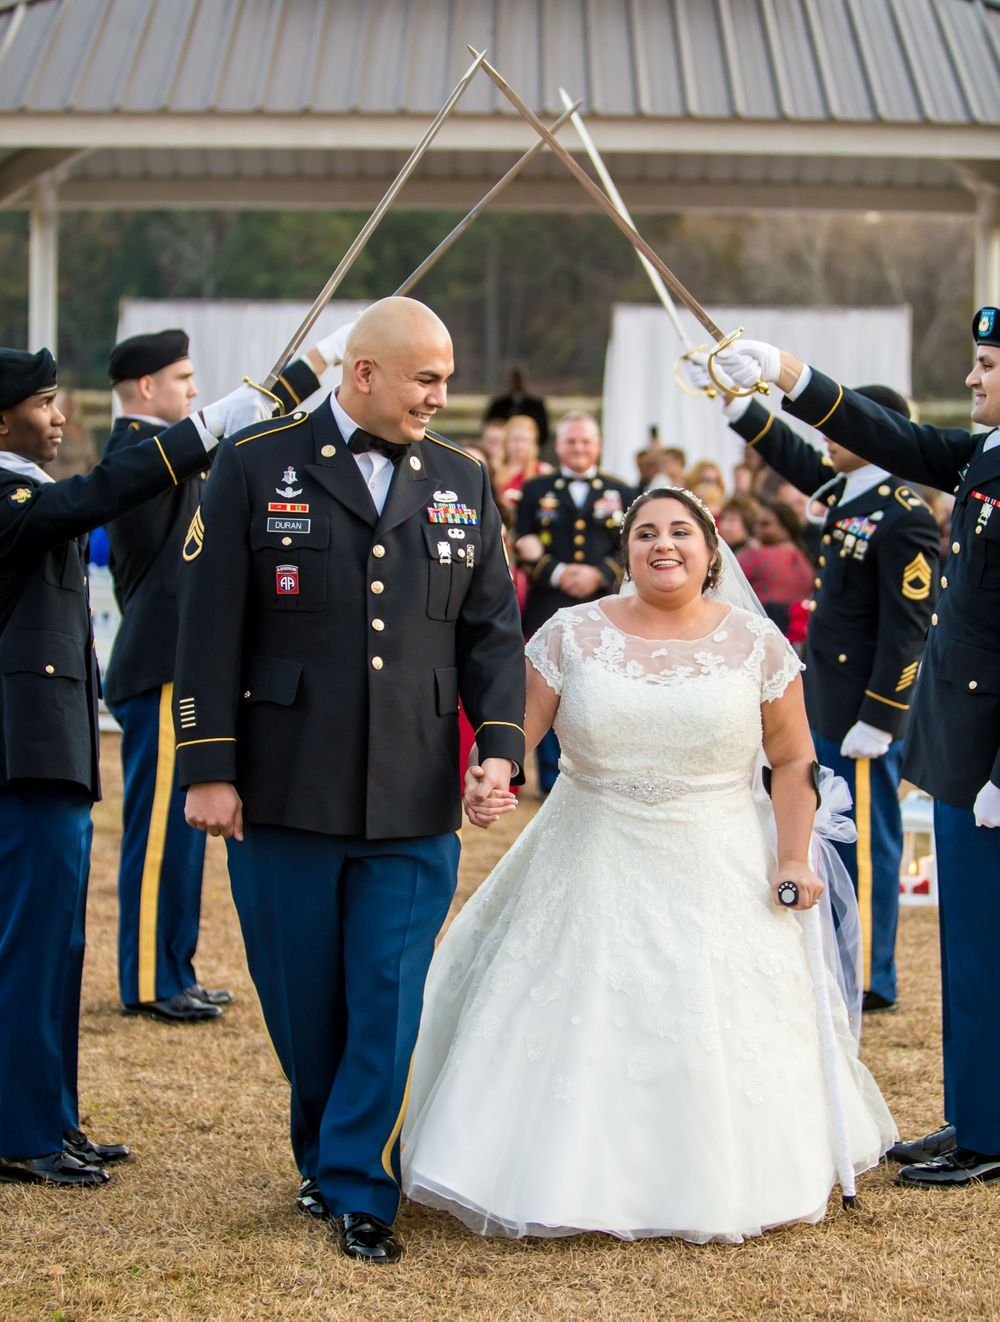 Bride Katie and groom Andrew walk under a saber arch following wedding at the Fort Jackson Officers Club in Columbia, SC